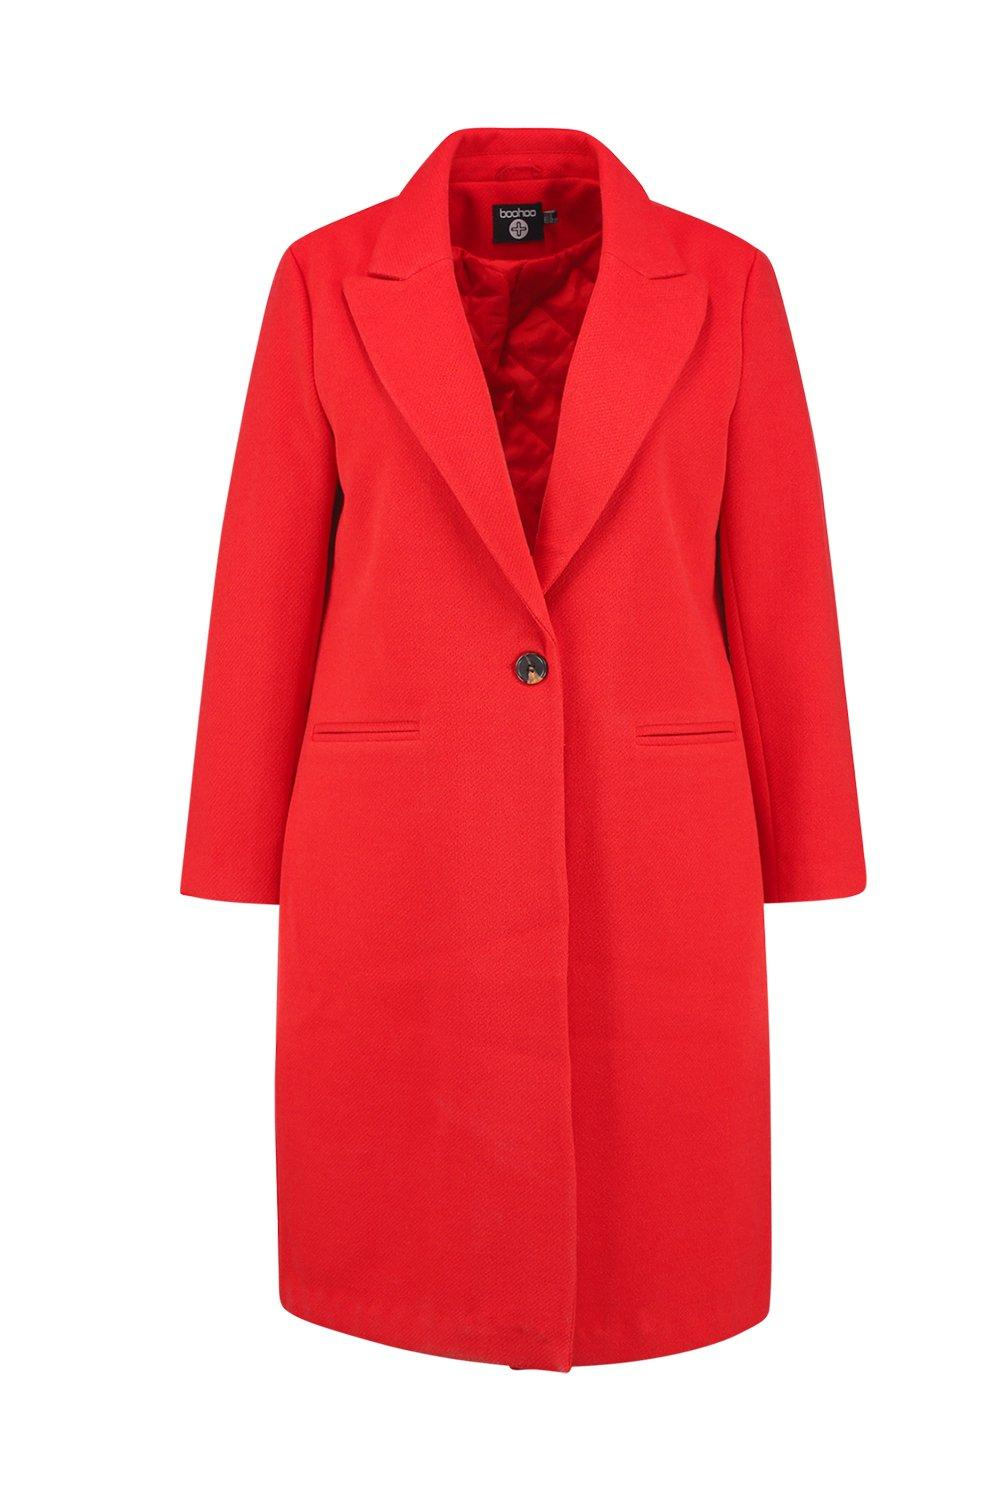 Coat Plus Longline red Longline Longline red Coat Formal Plus Plus Formal YOYwHZqt